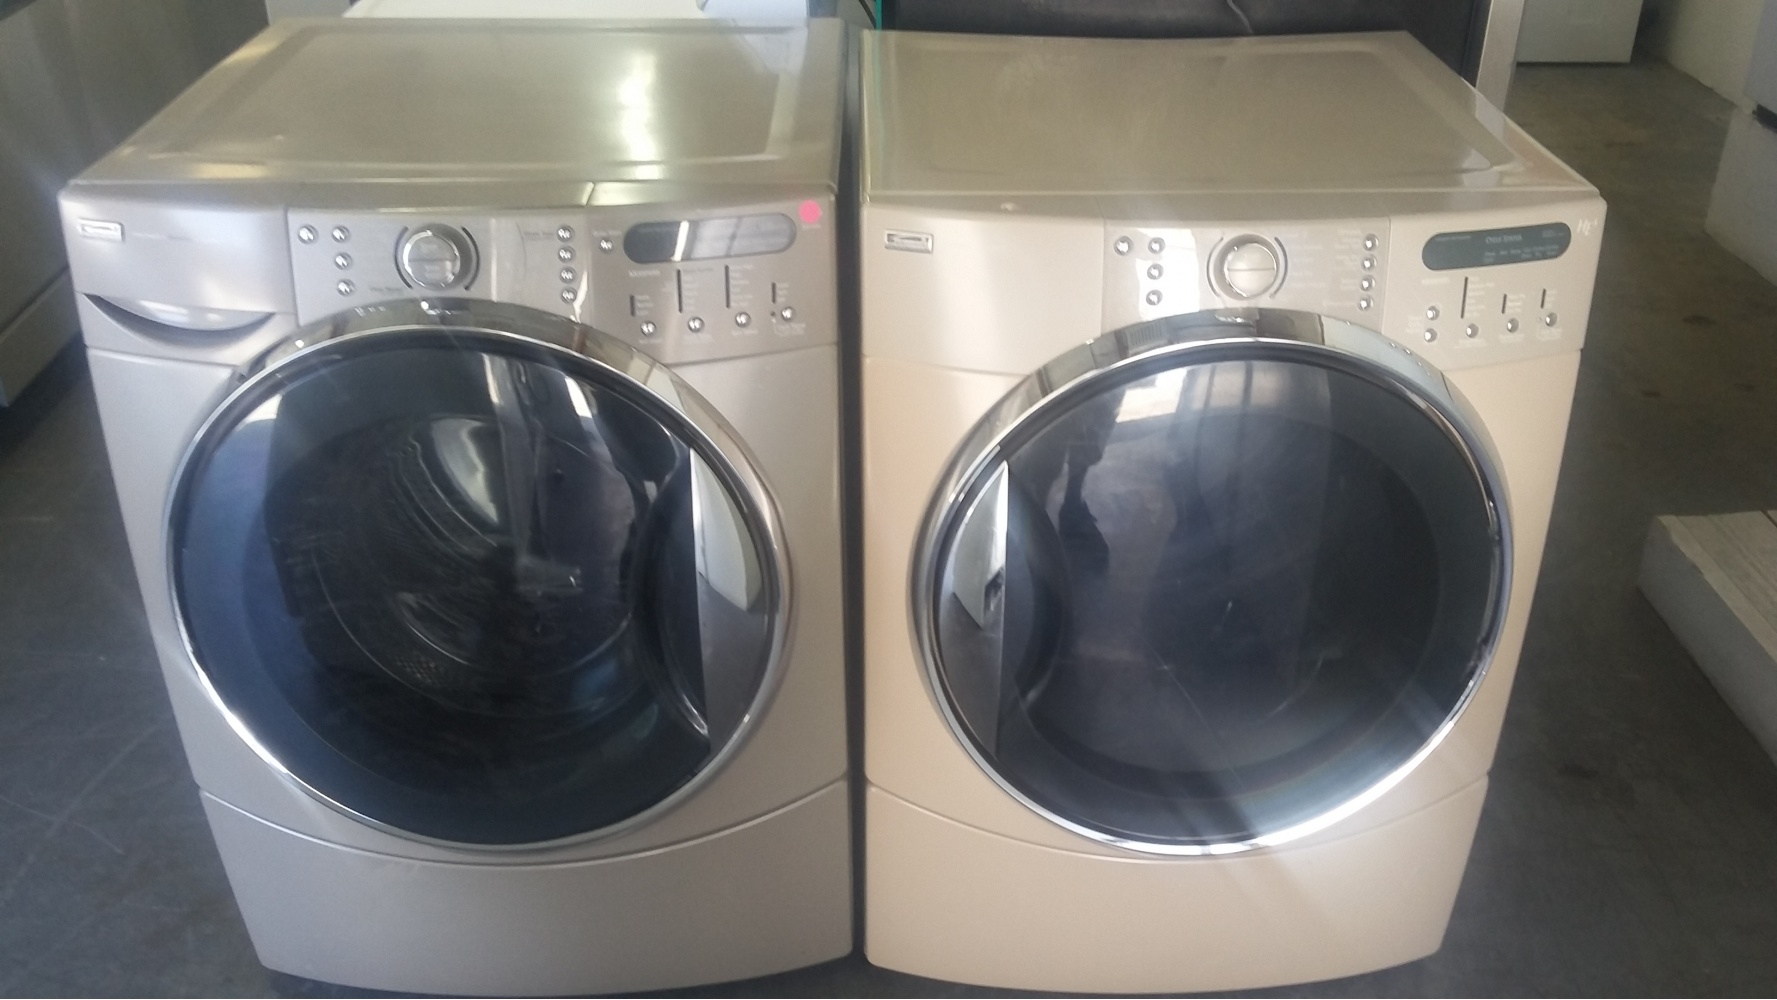 Standard Washer And Dryer Depth Kenmore He Tan Front Load Washer W/ Gas Dryer Set - Kimo's